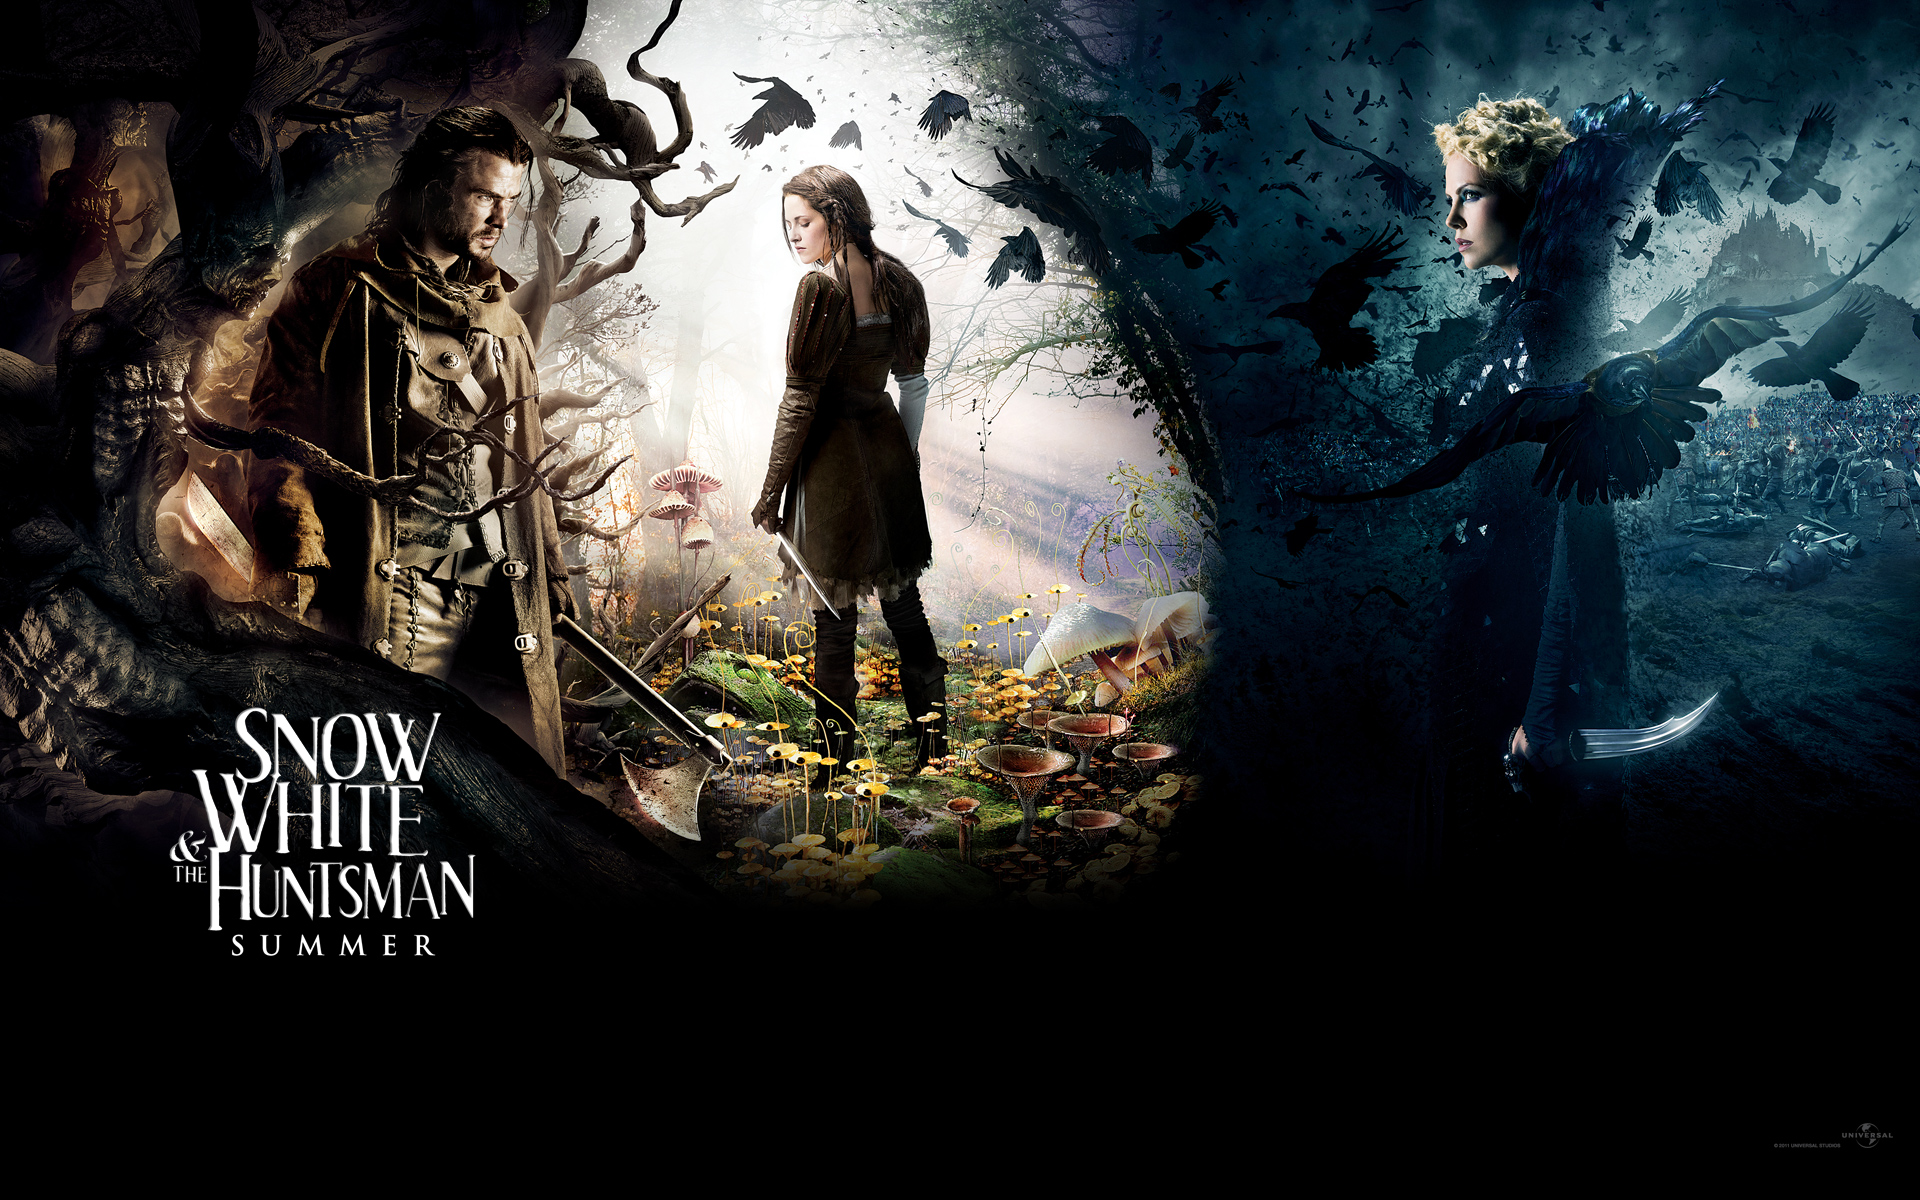 Snow-White-and-The-Huntsman-Movie